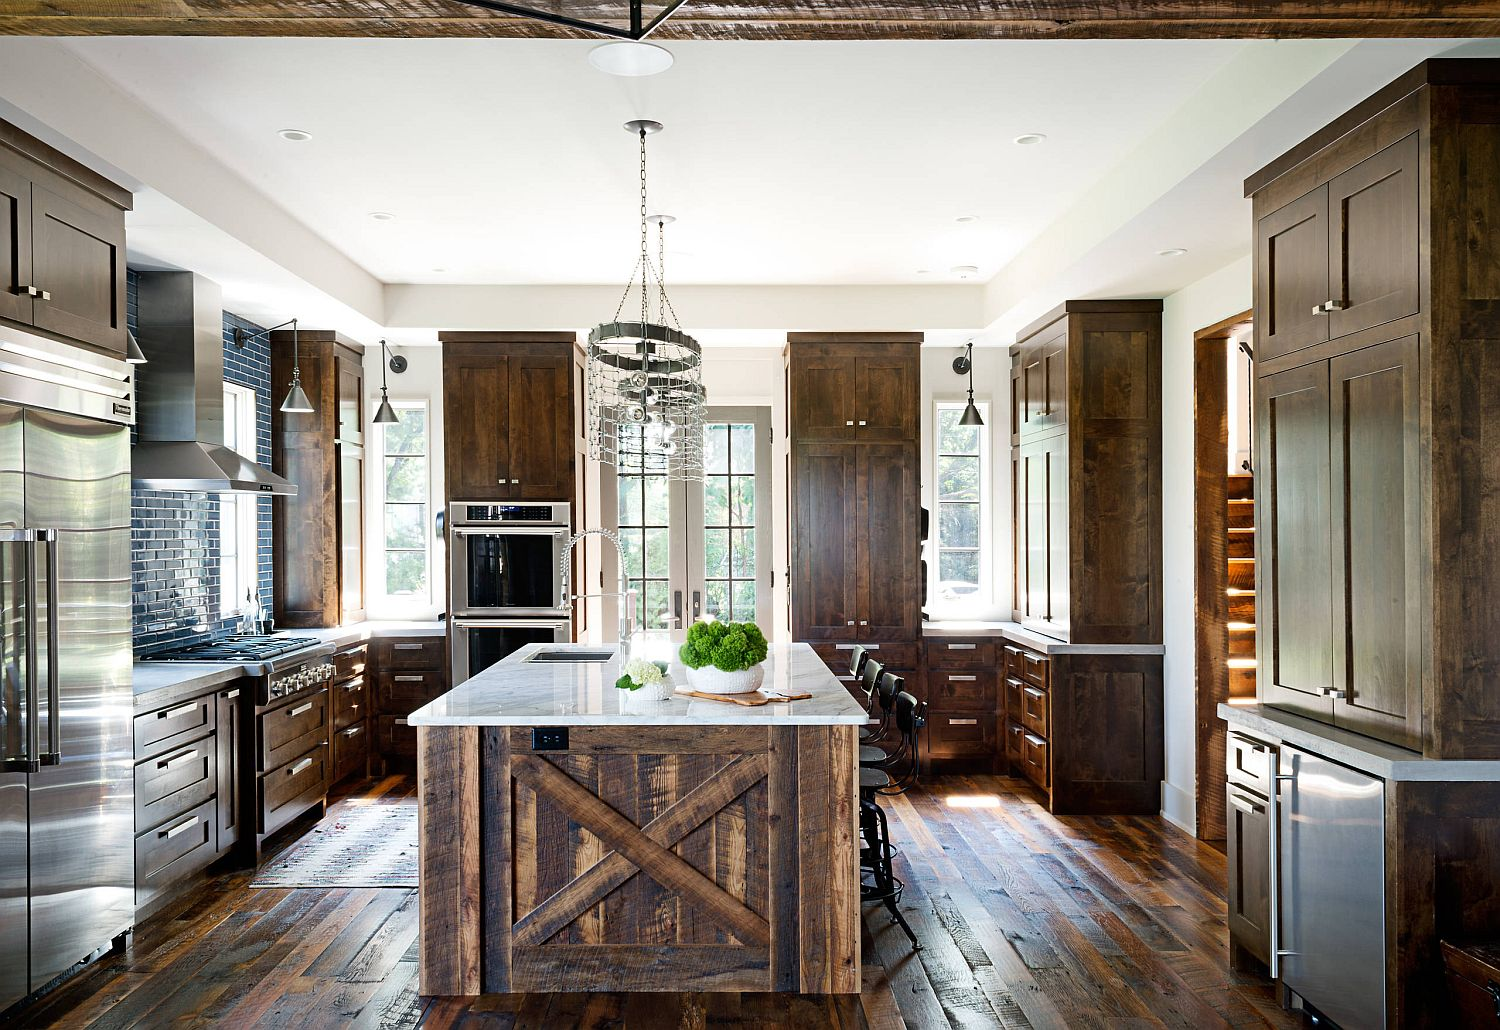 Reclaimed-wood-with-stone-countertop-for-the-dashing-kitchen-island-with-rustic-style